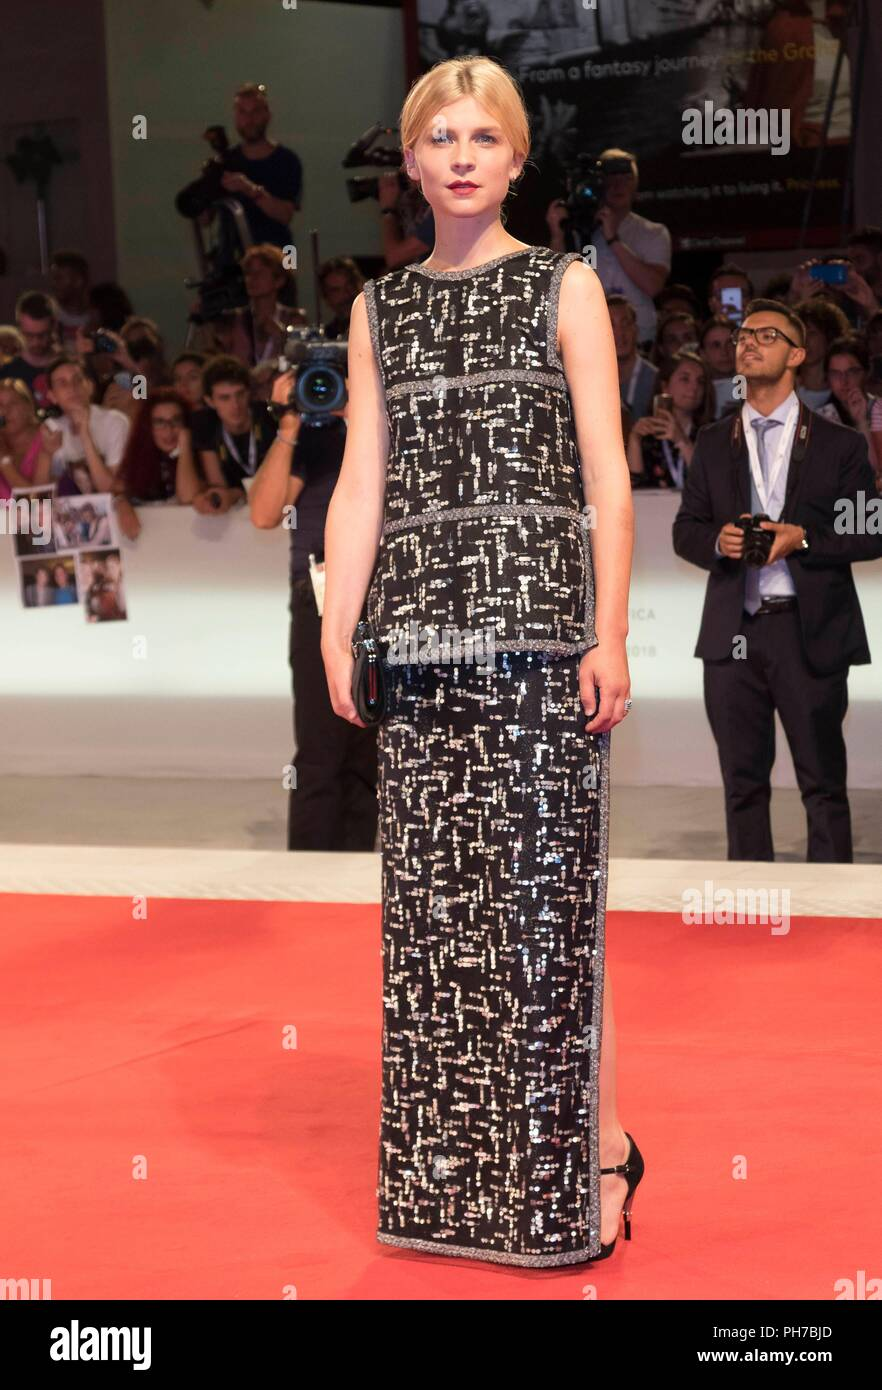 Venice, Italy. 30th Aug, 2018. Clemence Poesy attends the premiere of 'The Favourite' during the 75th Venice Film Festival at Palazzo del Cinema in Venice, Italy, on 30 August 2018. | usage worldwide Credit: dpa/Alamy Live News - Stock Image